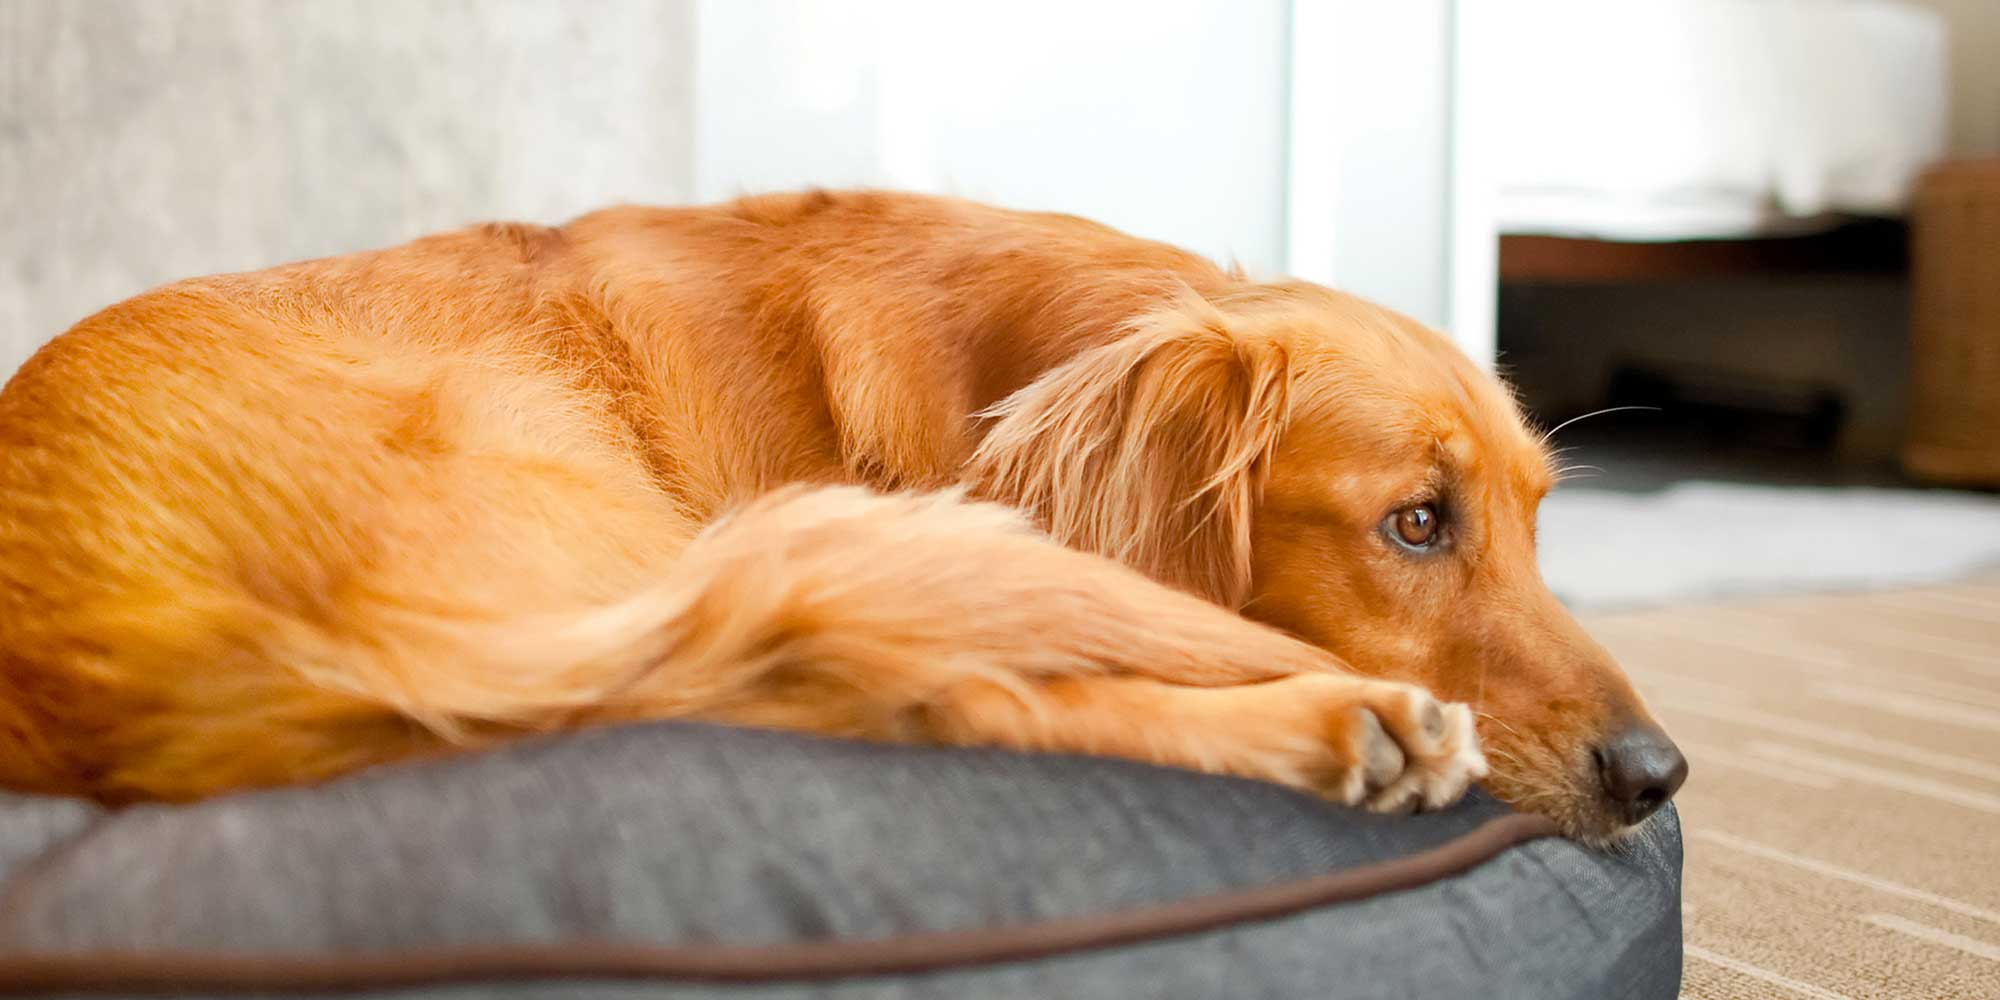 Reviews — Dog Breeding Supplies, Grooming Equipment & More